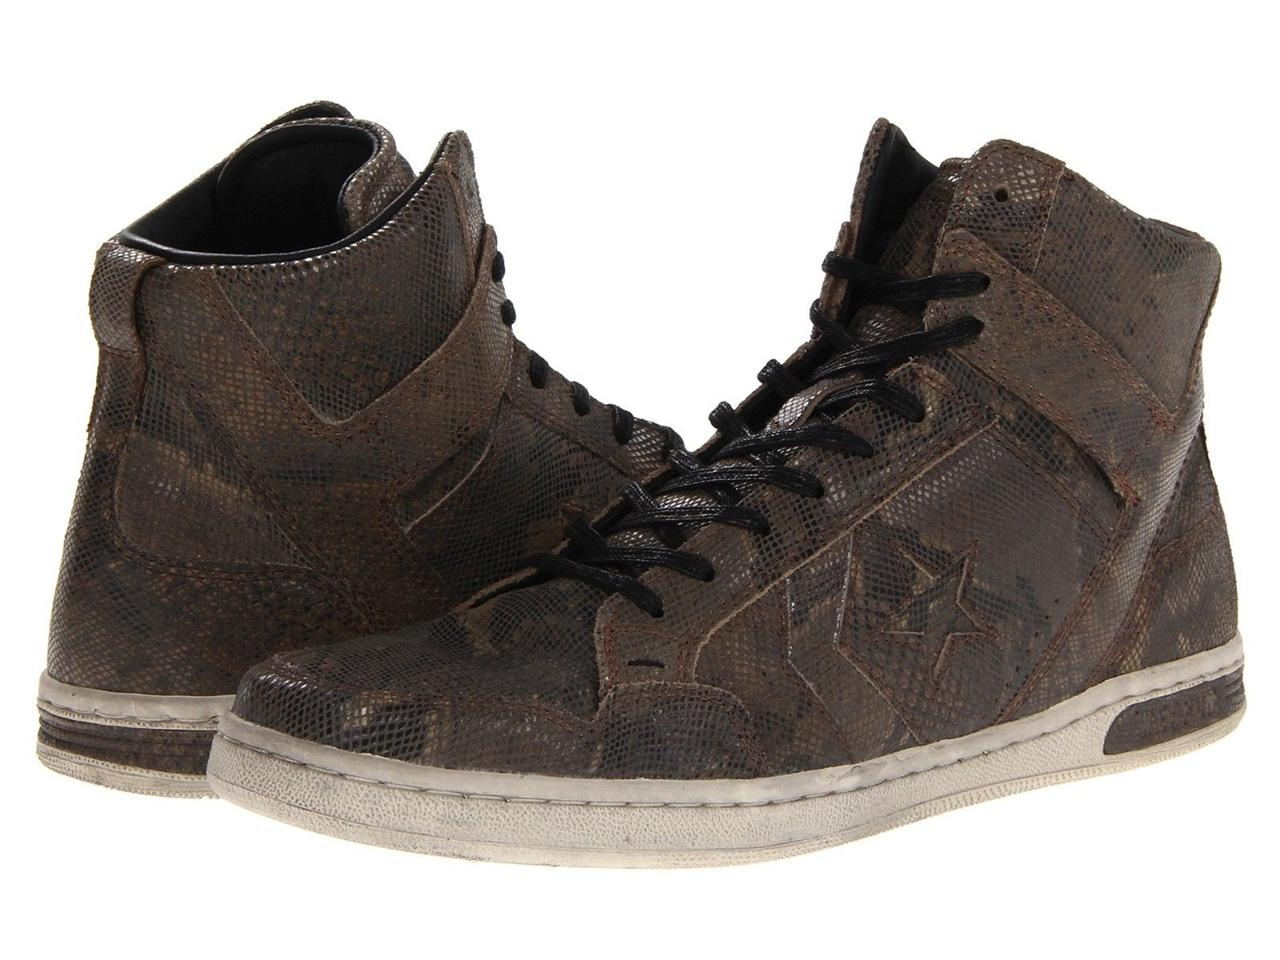 CONVERSE-X-BY-JOHN-VARVATOS-JV-WEAPON-MID-BROWN-BLACK-SNAKESKIN-HI-TOP-SNEAKERS